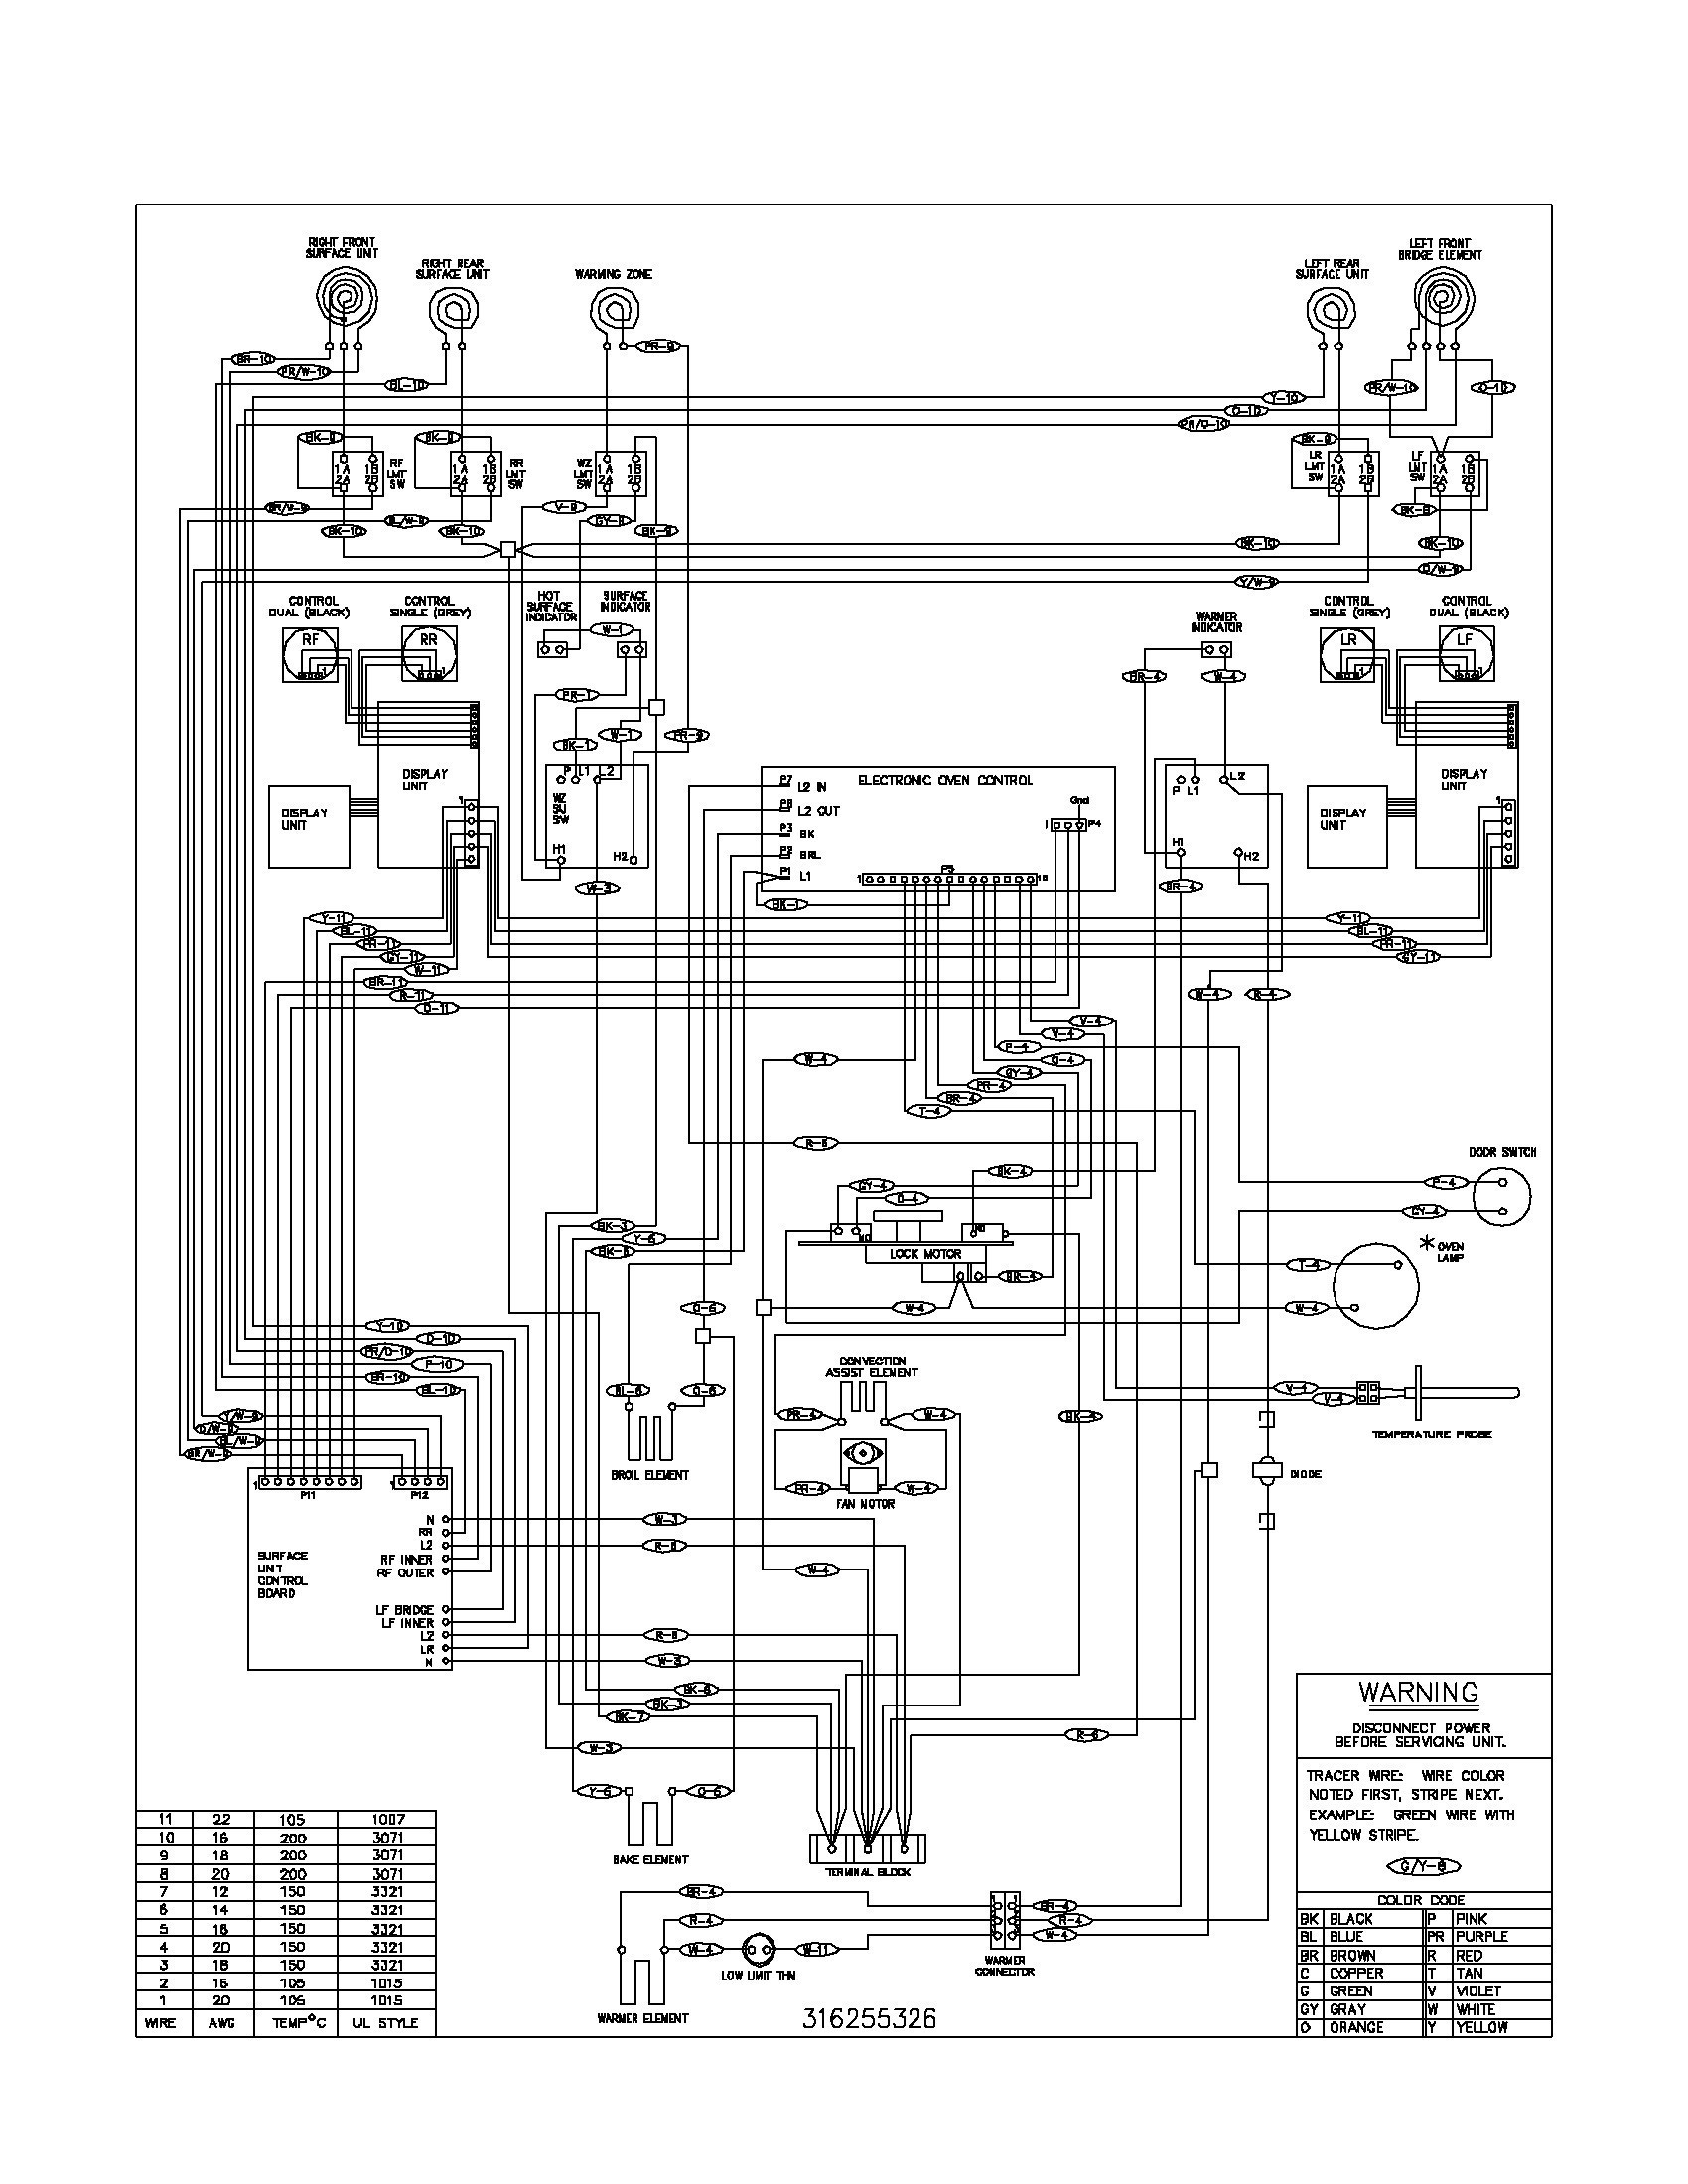 best of electric stove wiring diagram wiring stove and oven wiring diagram  electric stove wiring diagram